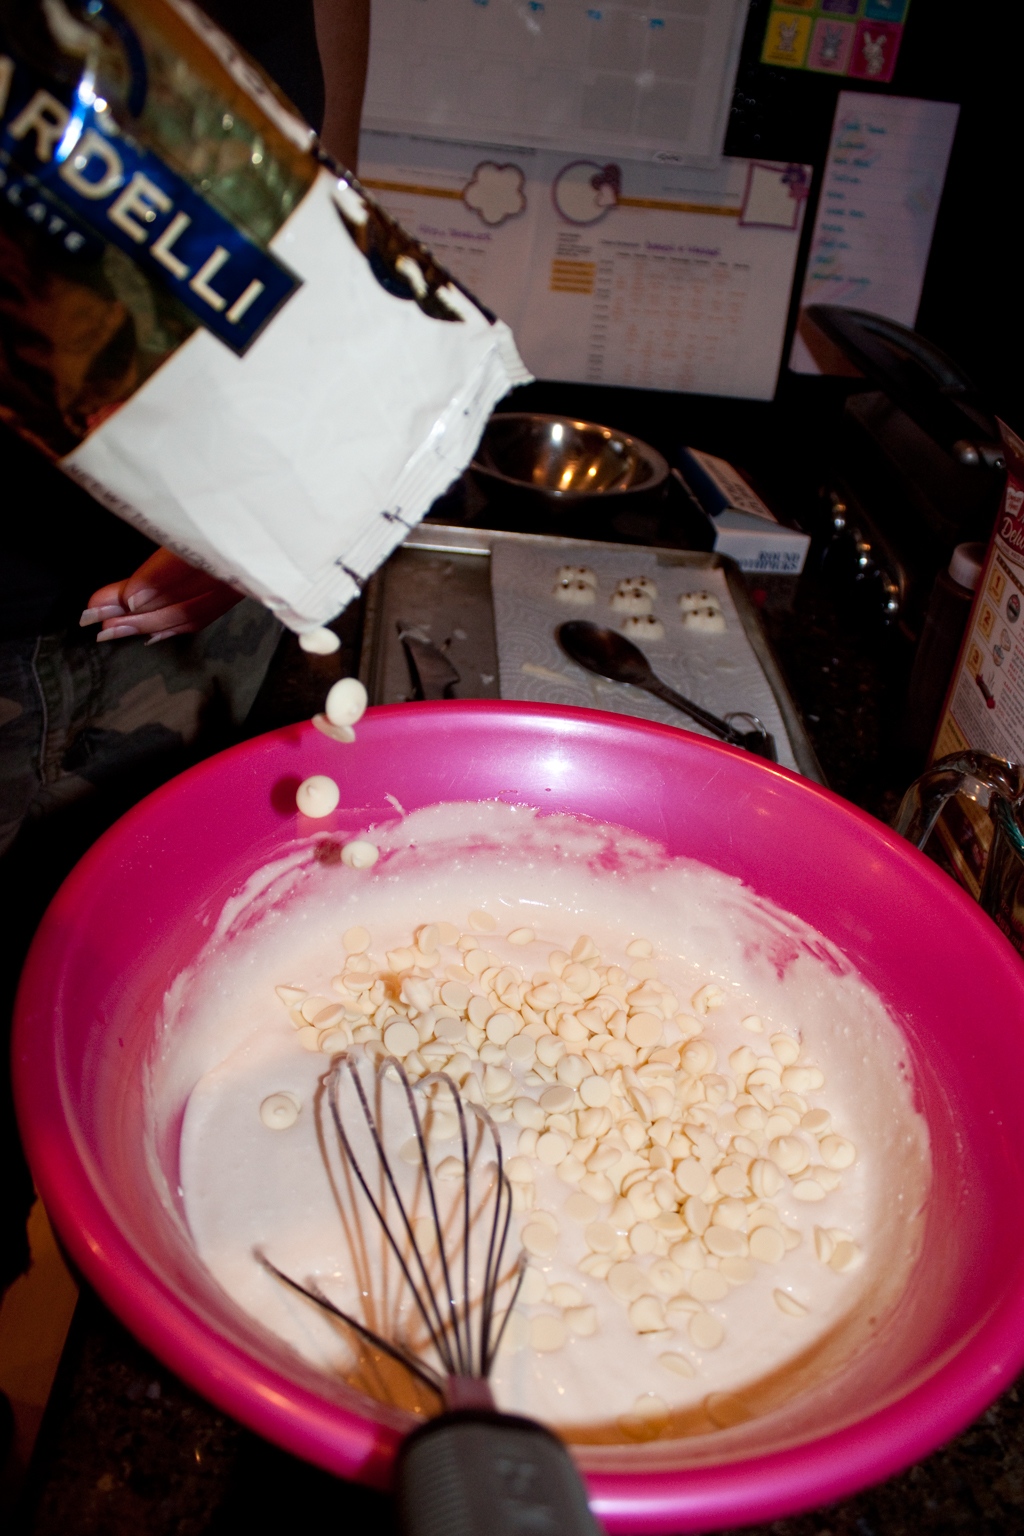 Adding white chocolate chips to batter